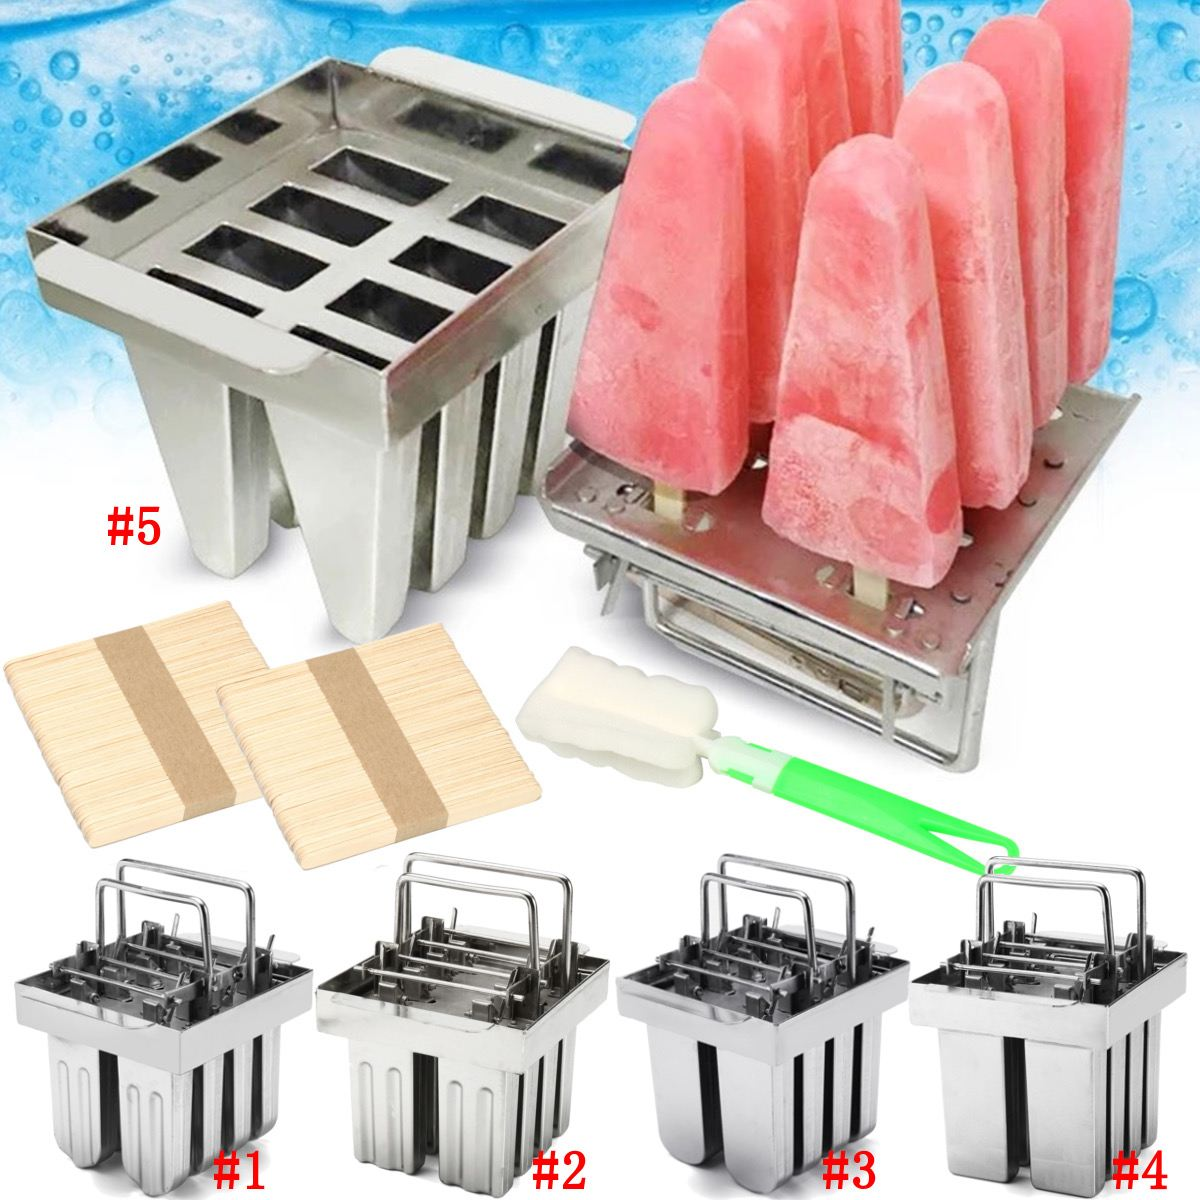 8 Molds 304 Stainless Steel DIY Ice Cream Mould Popsicle Fruit Ice Cream Make Tool Silver Ice Cream Maker Stick Holder Mould New8 Molds 304 Stainless Steel DIY Ice Cream Mould Popsicle Fruit Ice Cream Make Tool Silver Ice Cream Maker Stick Holder Mould New